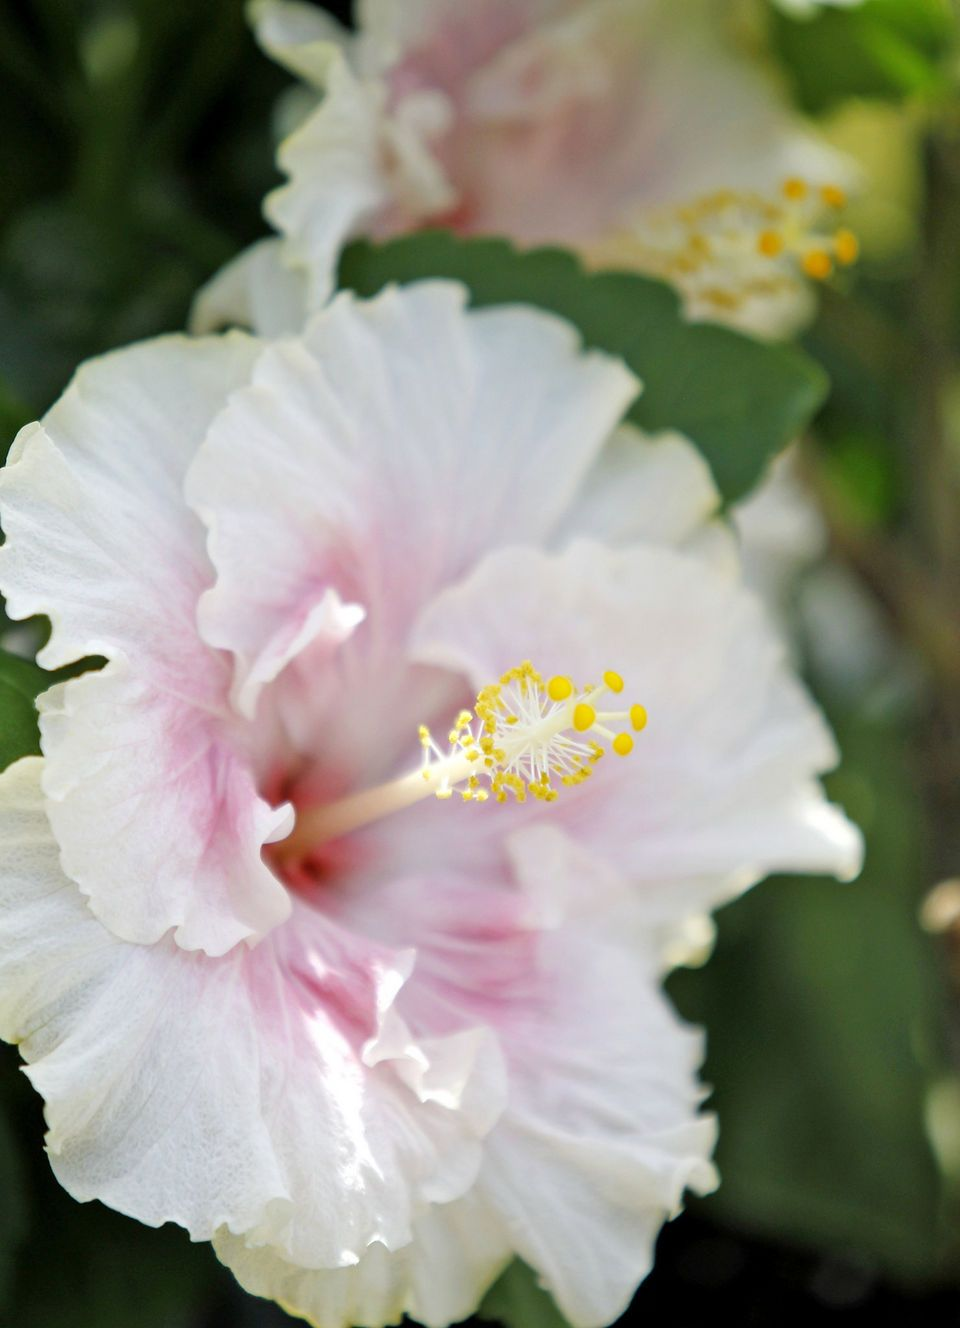 How To Plant Prune And Fertilizer Hibiscus Plants For An Optimal